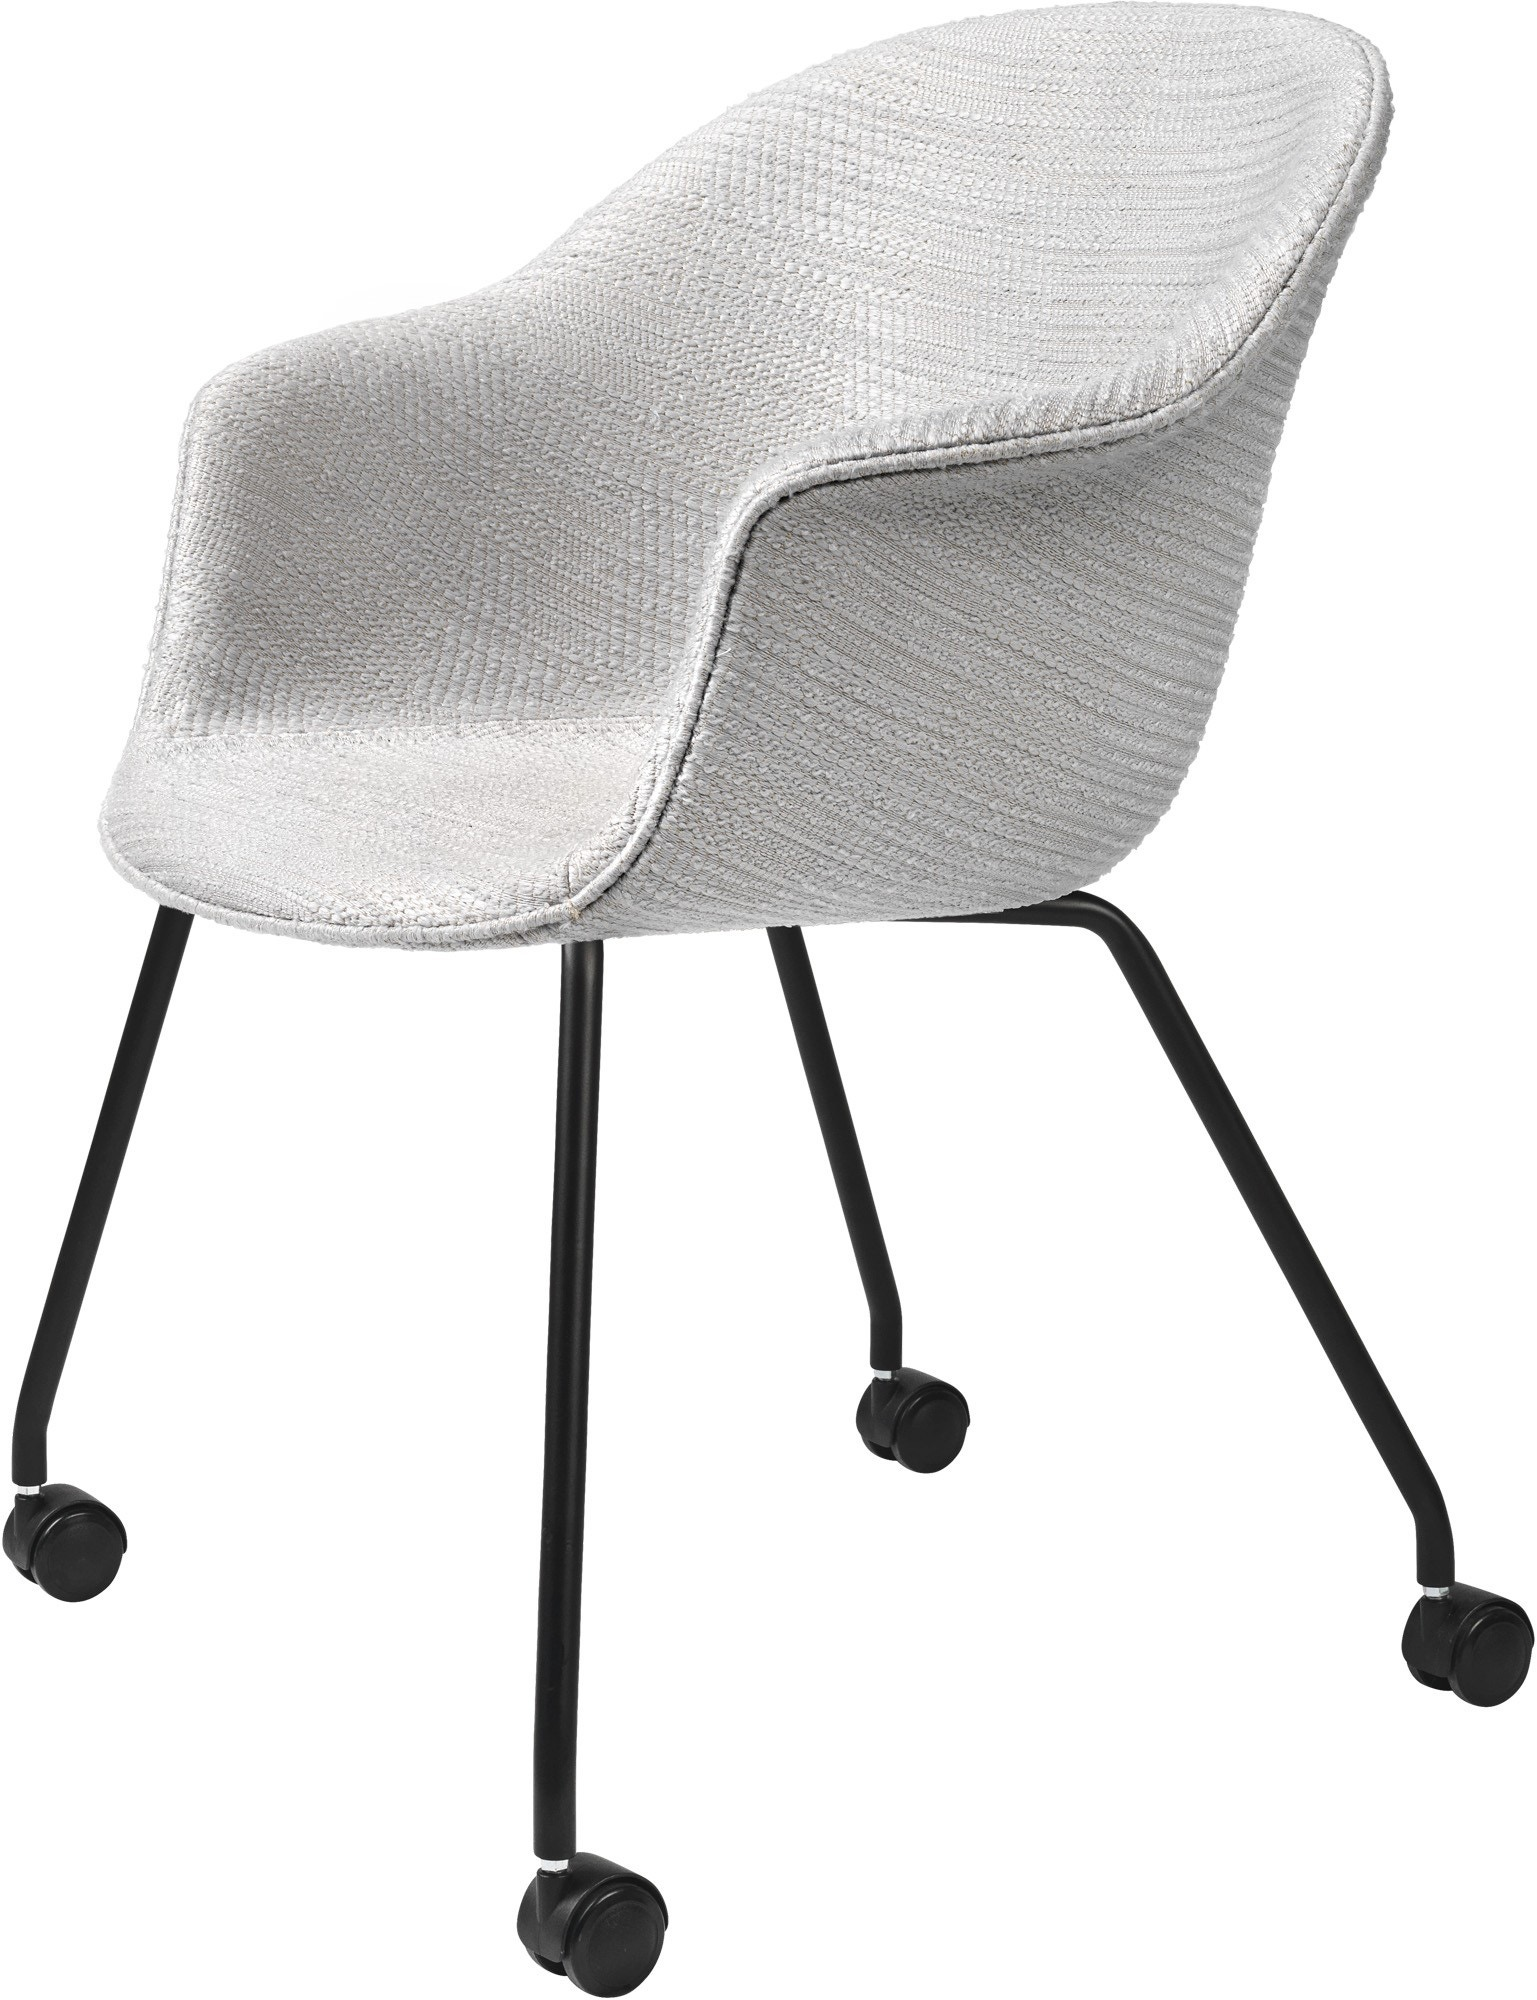 GUBI Bat Meeting Chair 4 Legs with Castors (Fully-Upholstered)